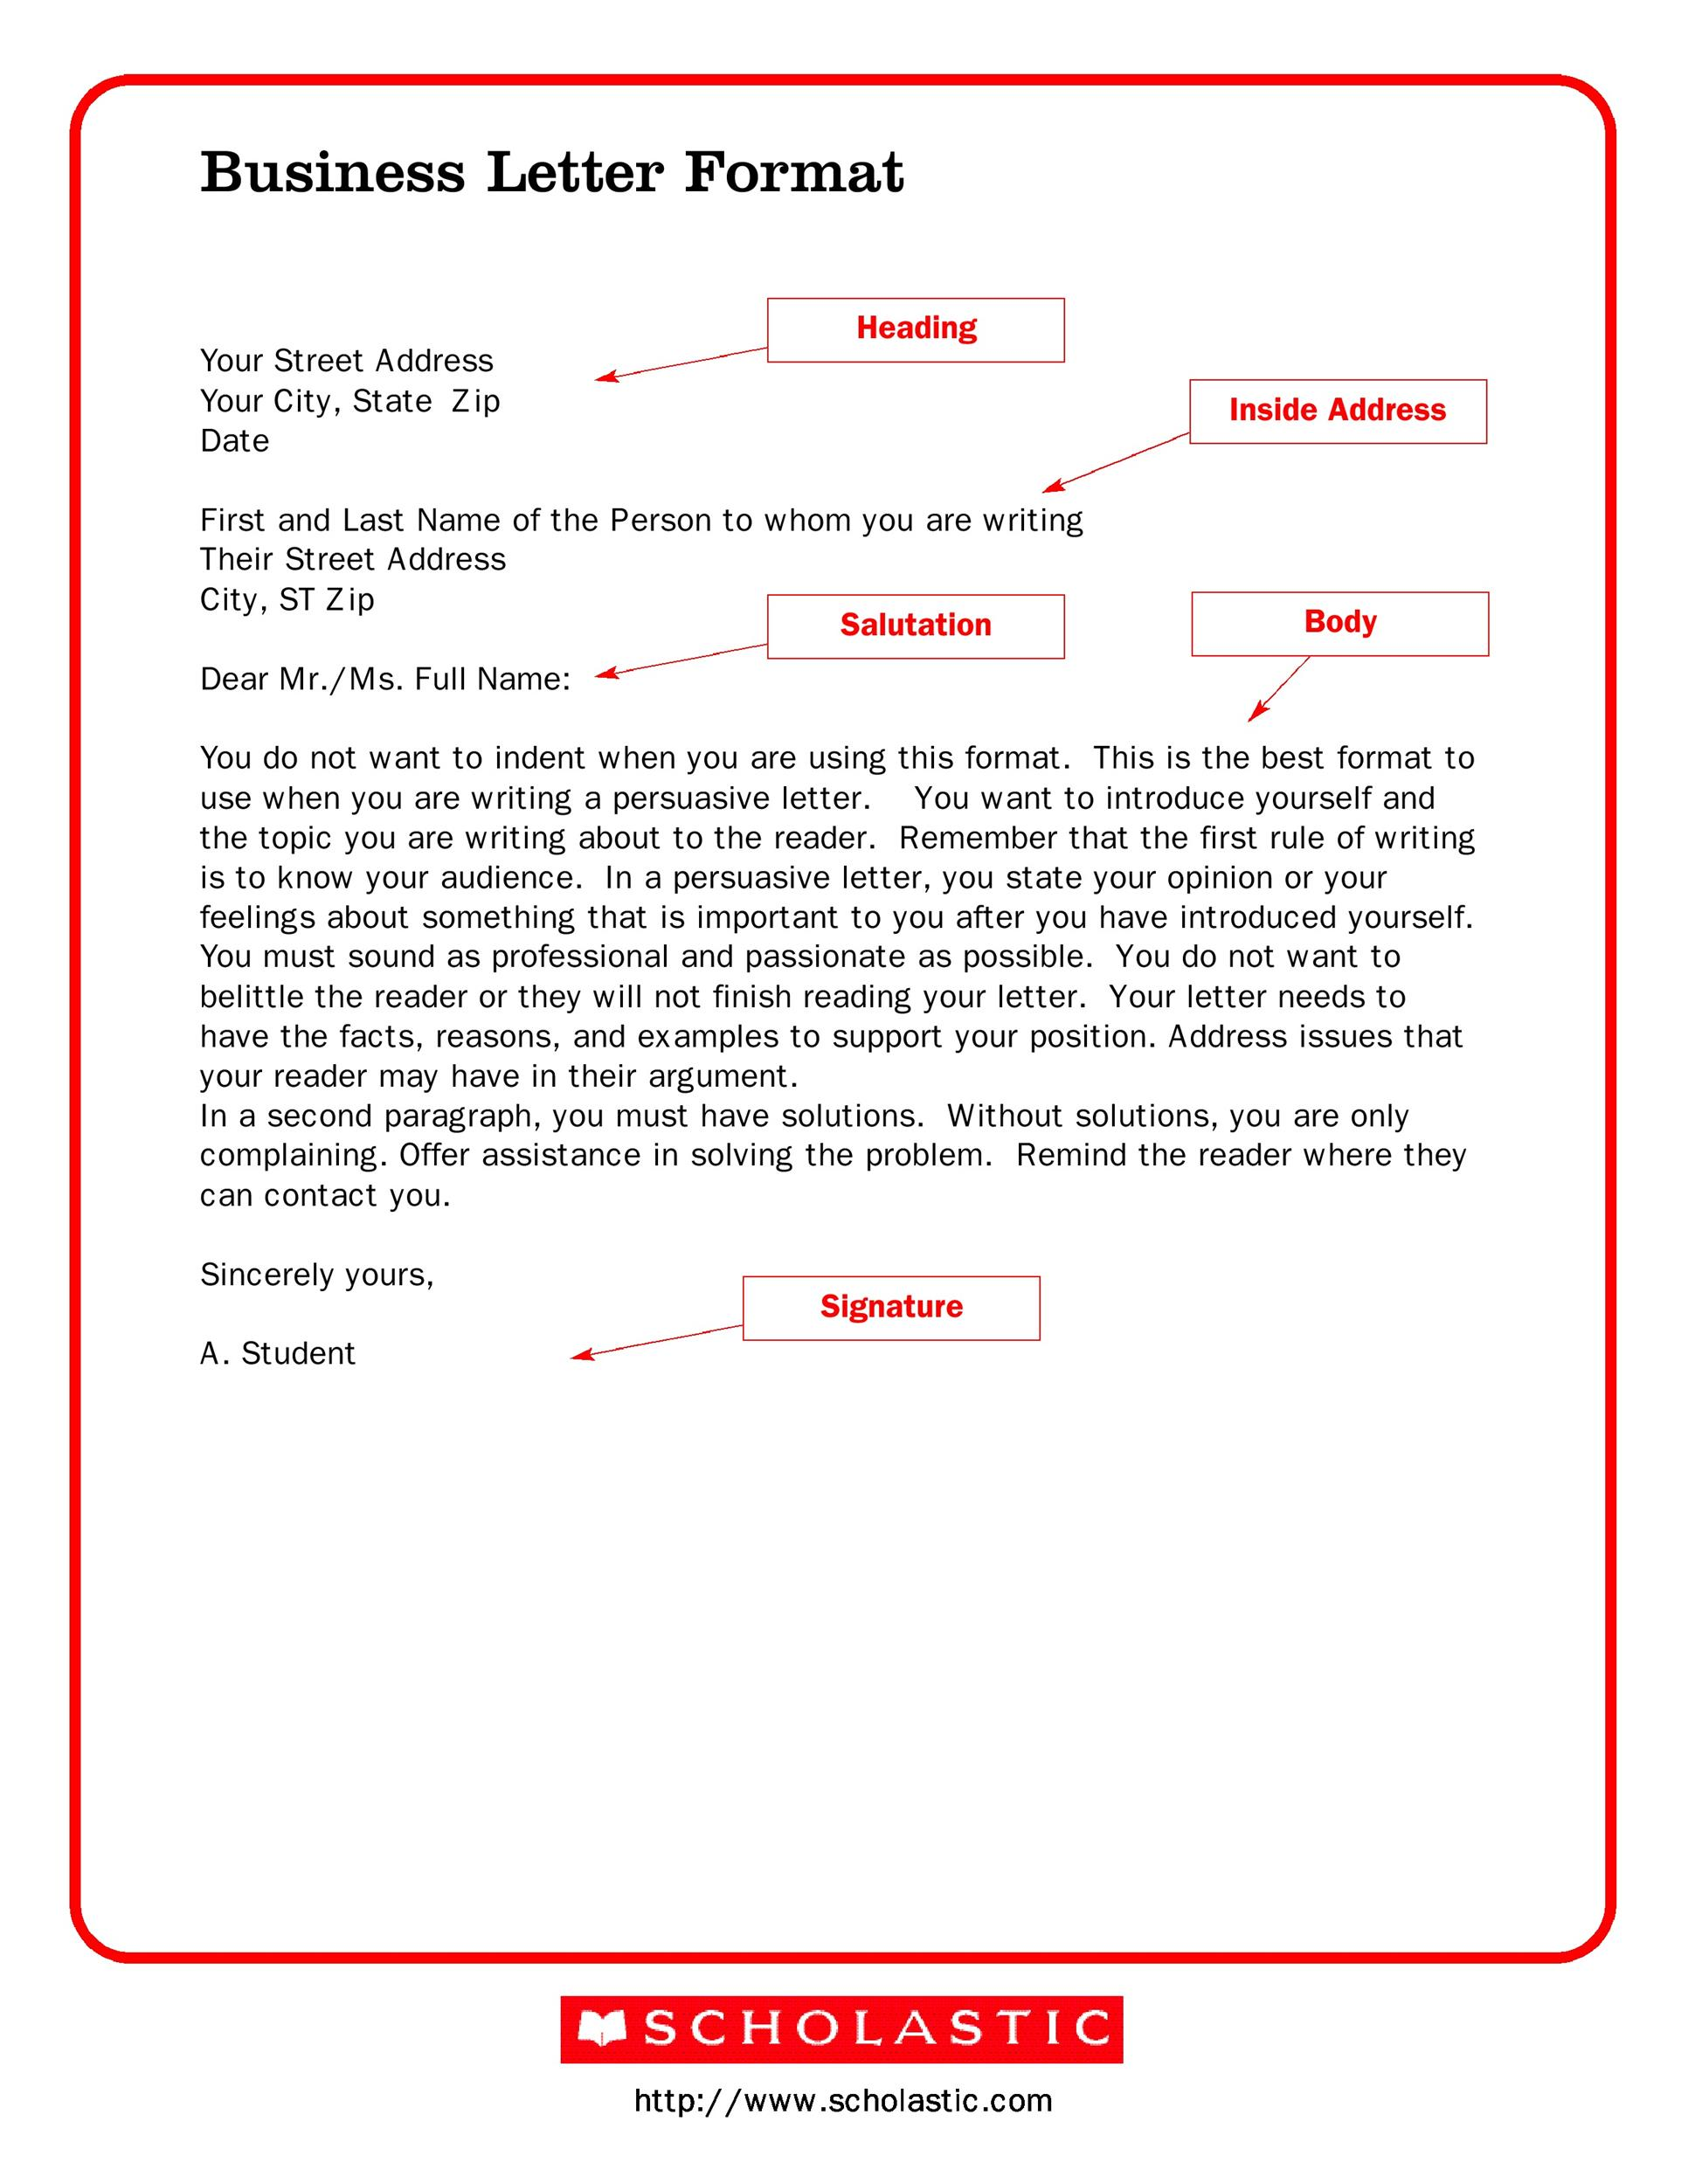 35 formal / business letter format templates & examples ᐅ ... business writing diagram business wiring diagram